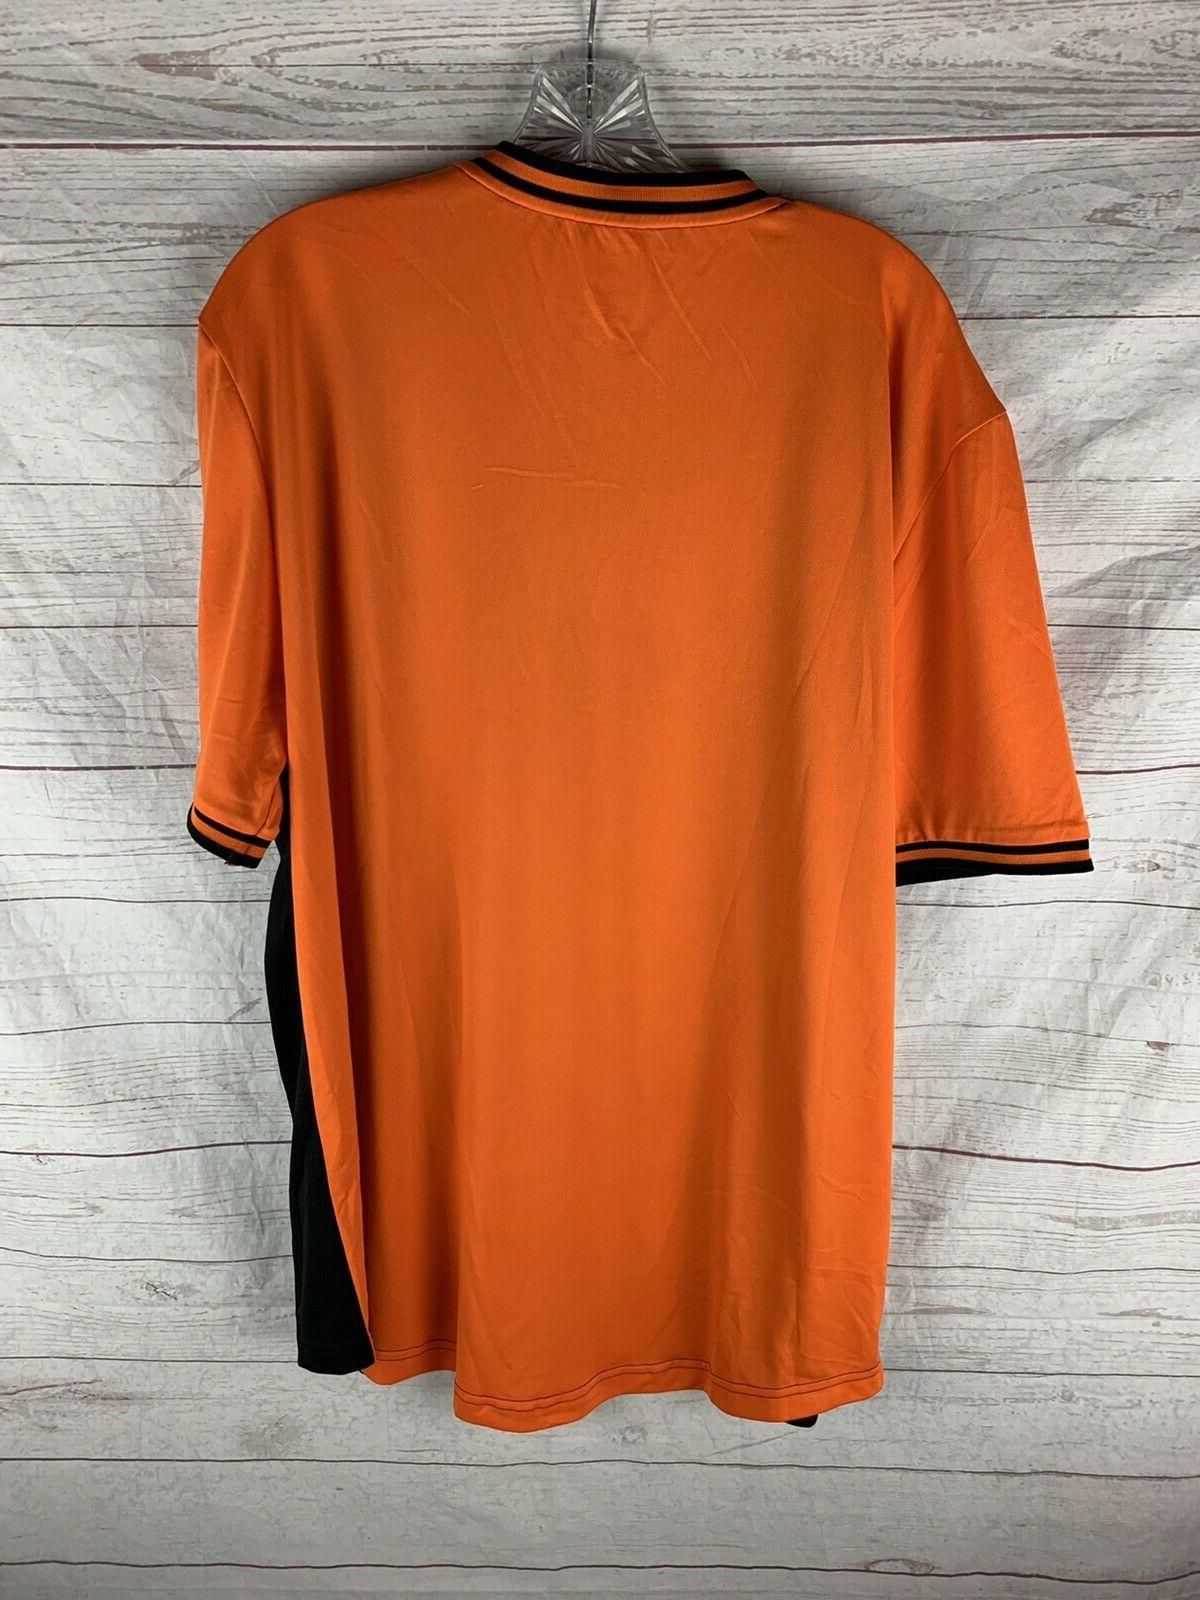 New Cooperstown Collection Francisco Giants size